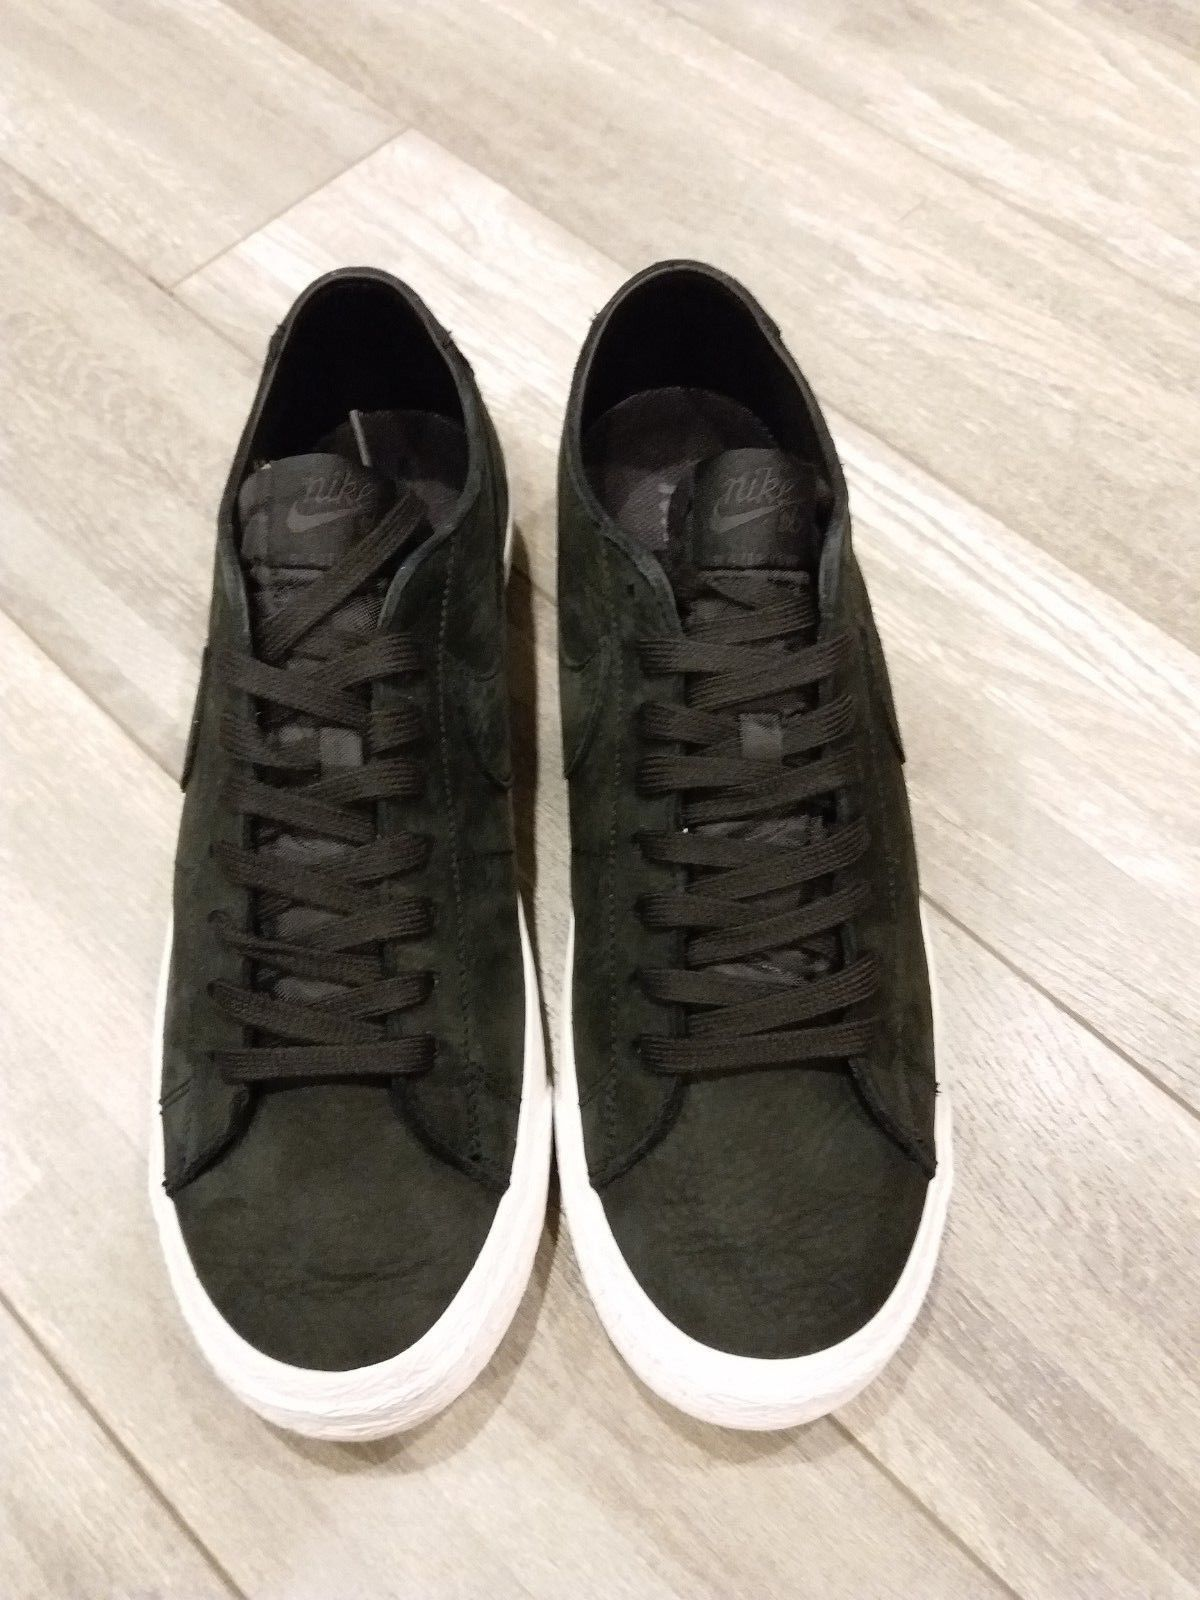 Nike SB Zoom Blazer Low Pro Decon Black and 50 similar items